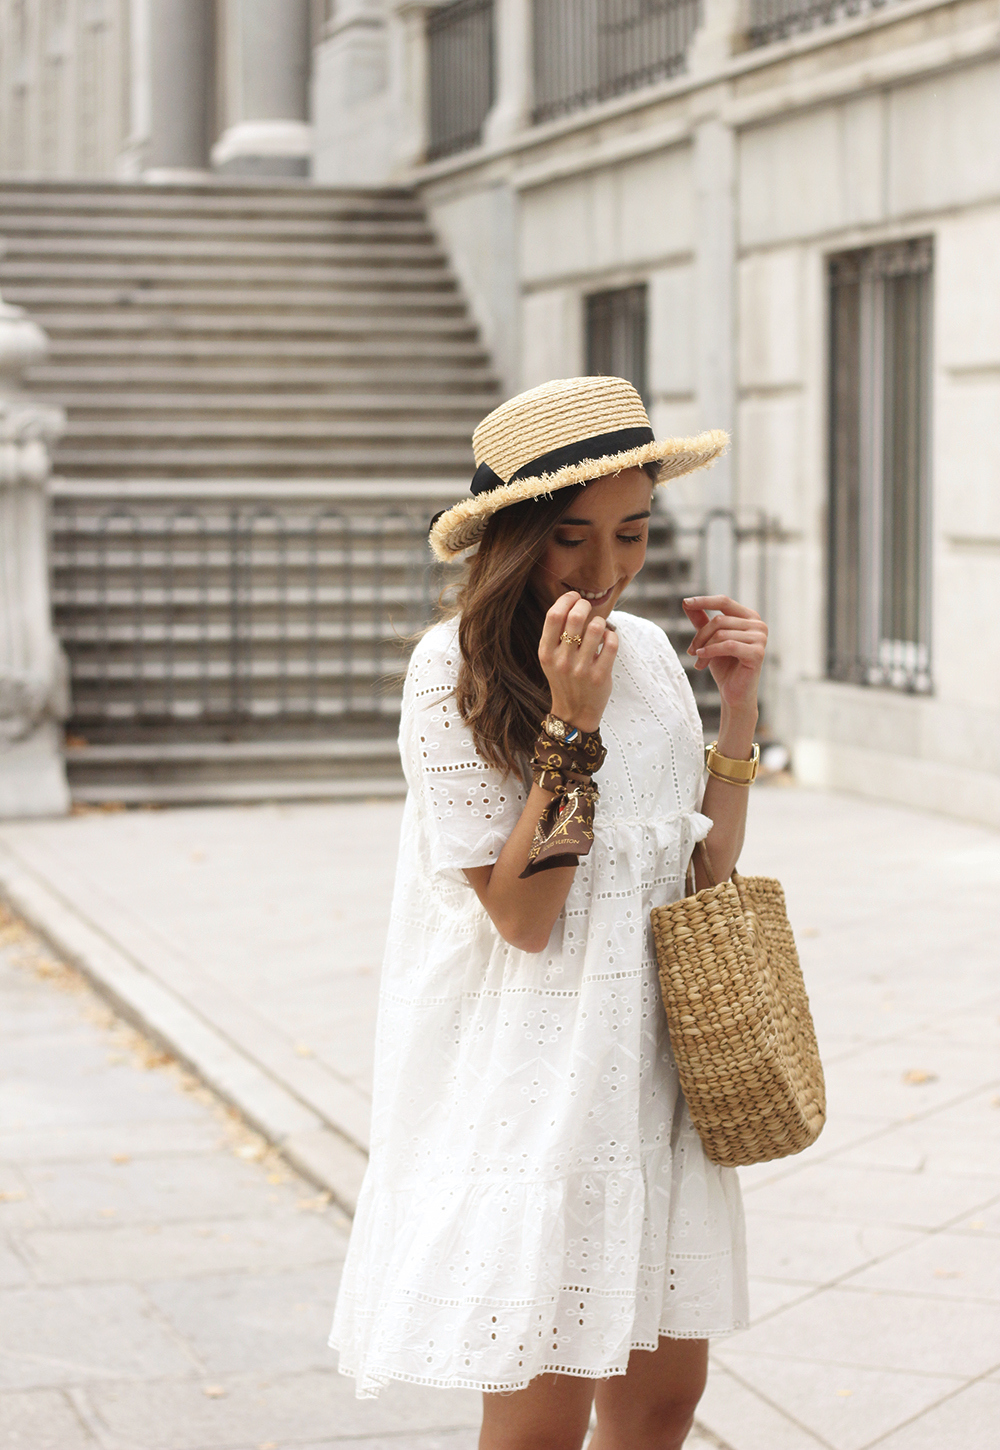 White summer dress canotier street style outfit 201911